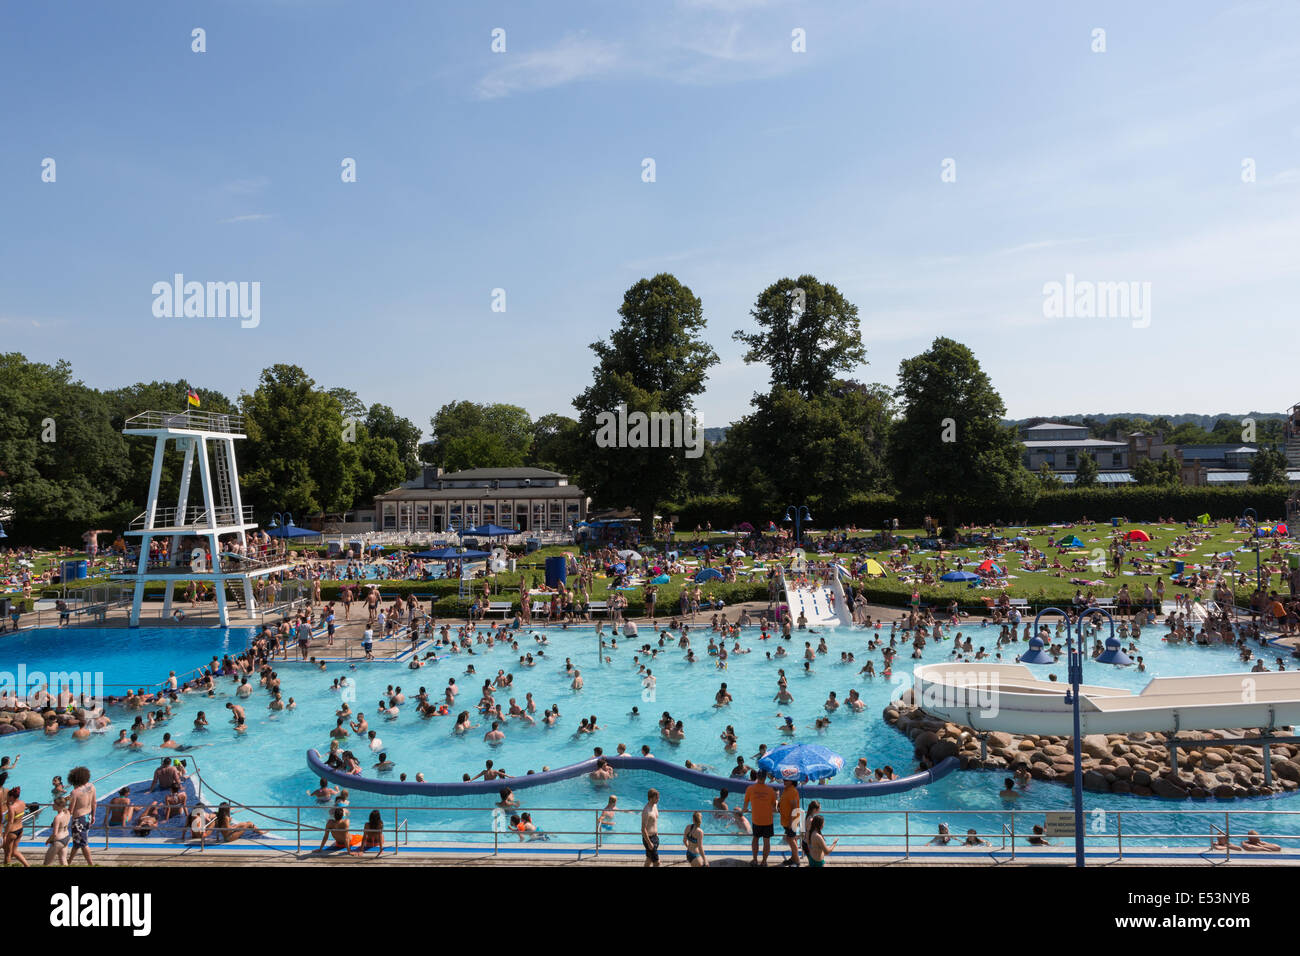 crowded outdoor swimming pool full of people bathing in germany on a stock photo 71997839 alamy. Black Bedroom Furniture Sets. Home Design Ideas